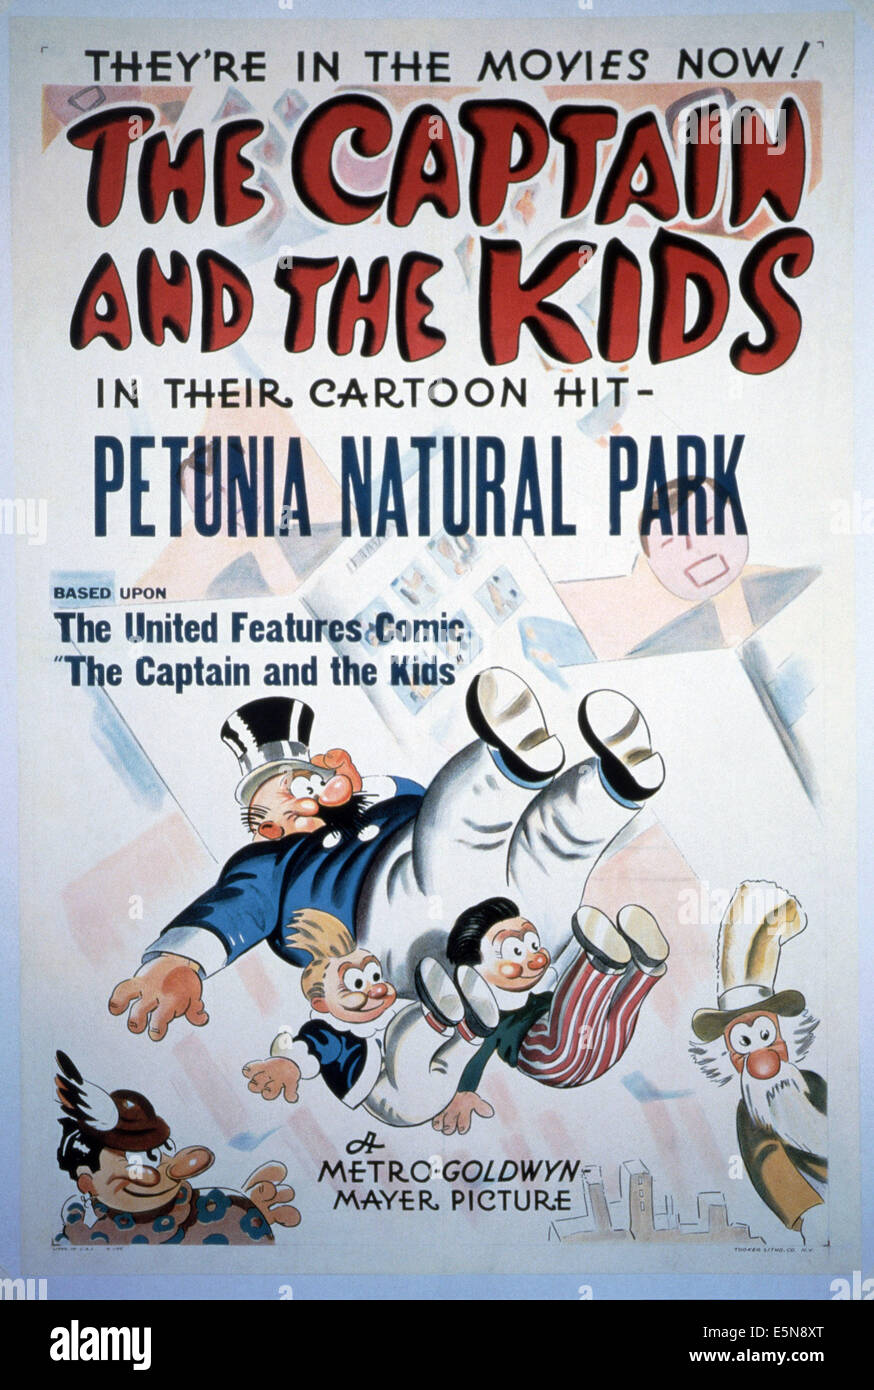 PETUNIA NATIONAL PARK, The Captain and the Kids, 1939 - Stock Image